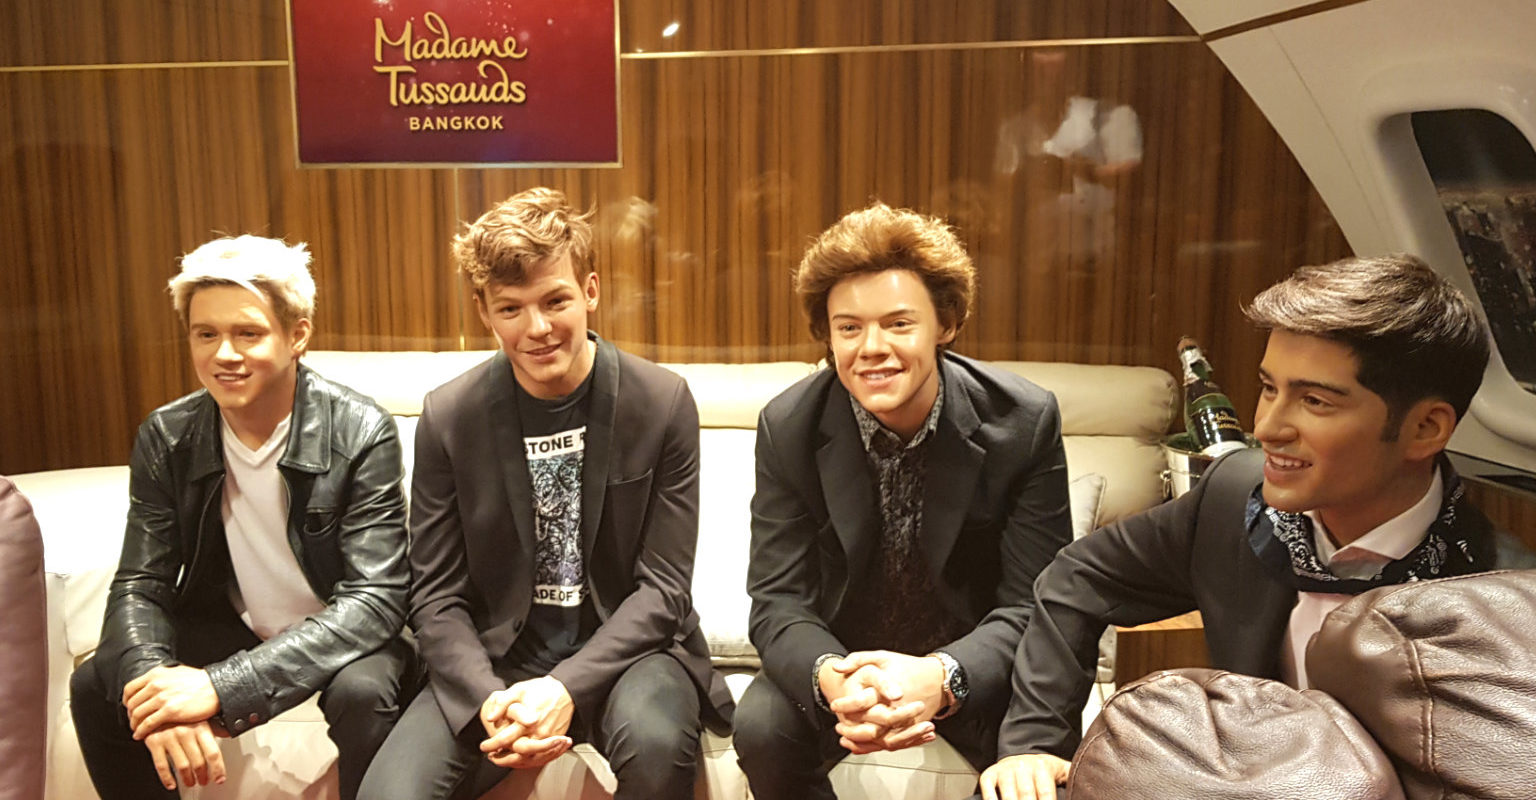 One Direction in Madame Tussauds